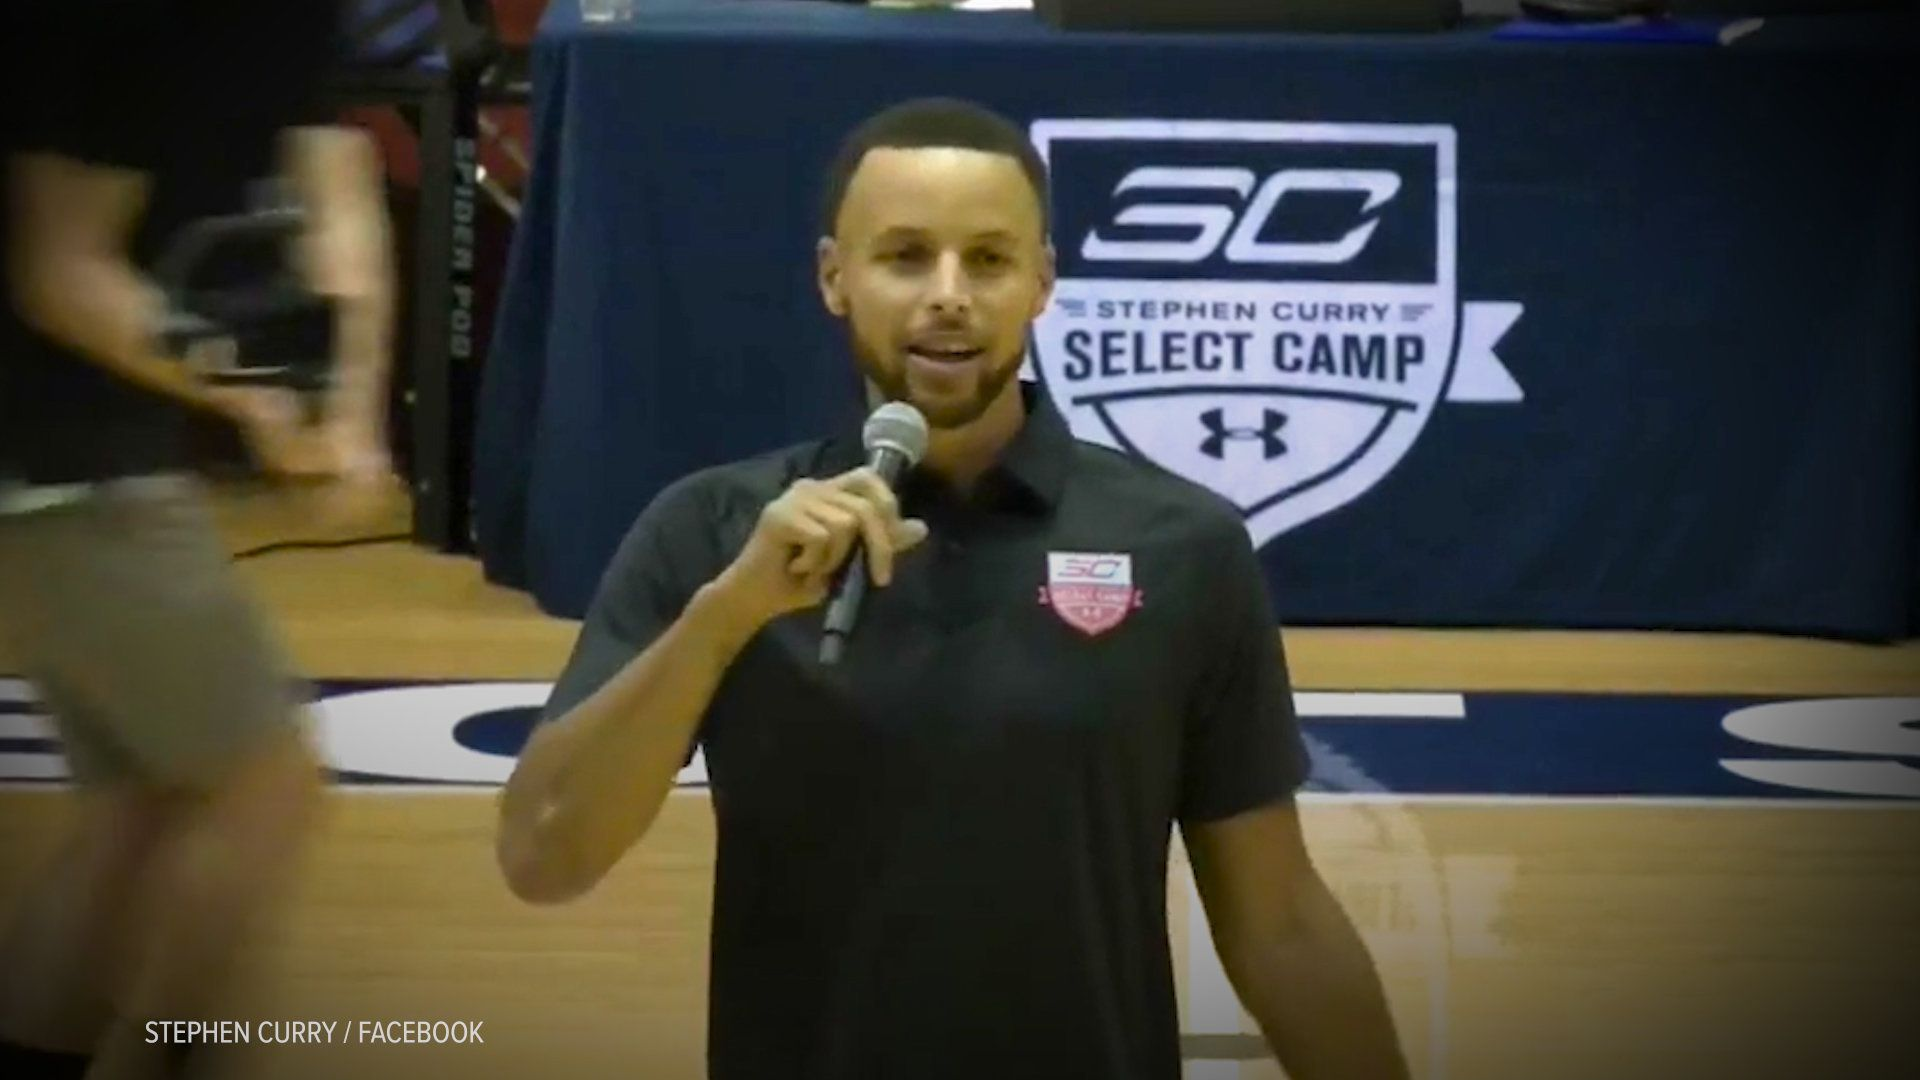 Stephen Curry raised money for Nia Wilsons family